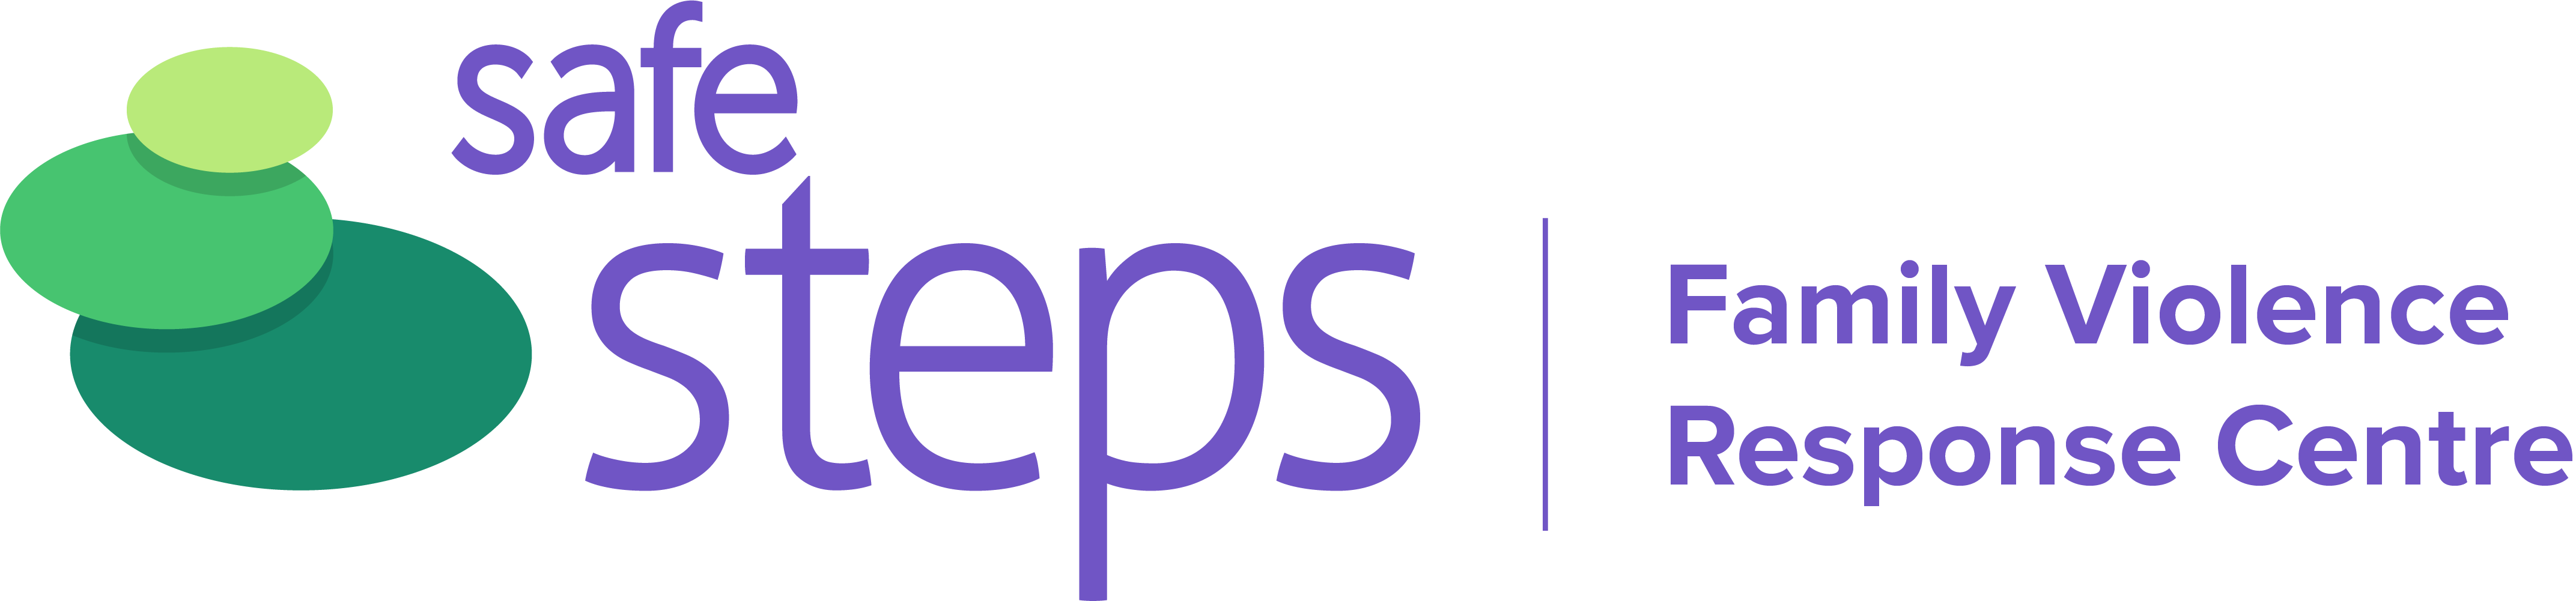 safe steps Family Violence Response Centre